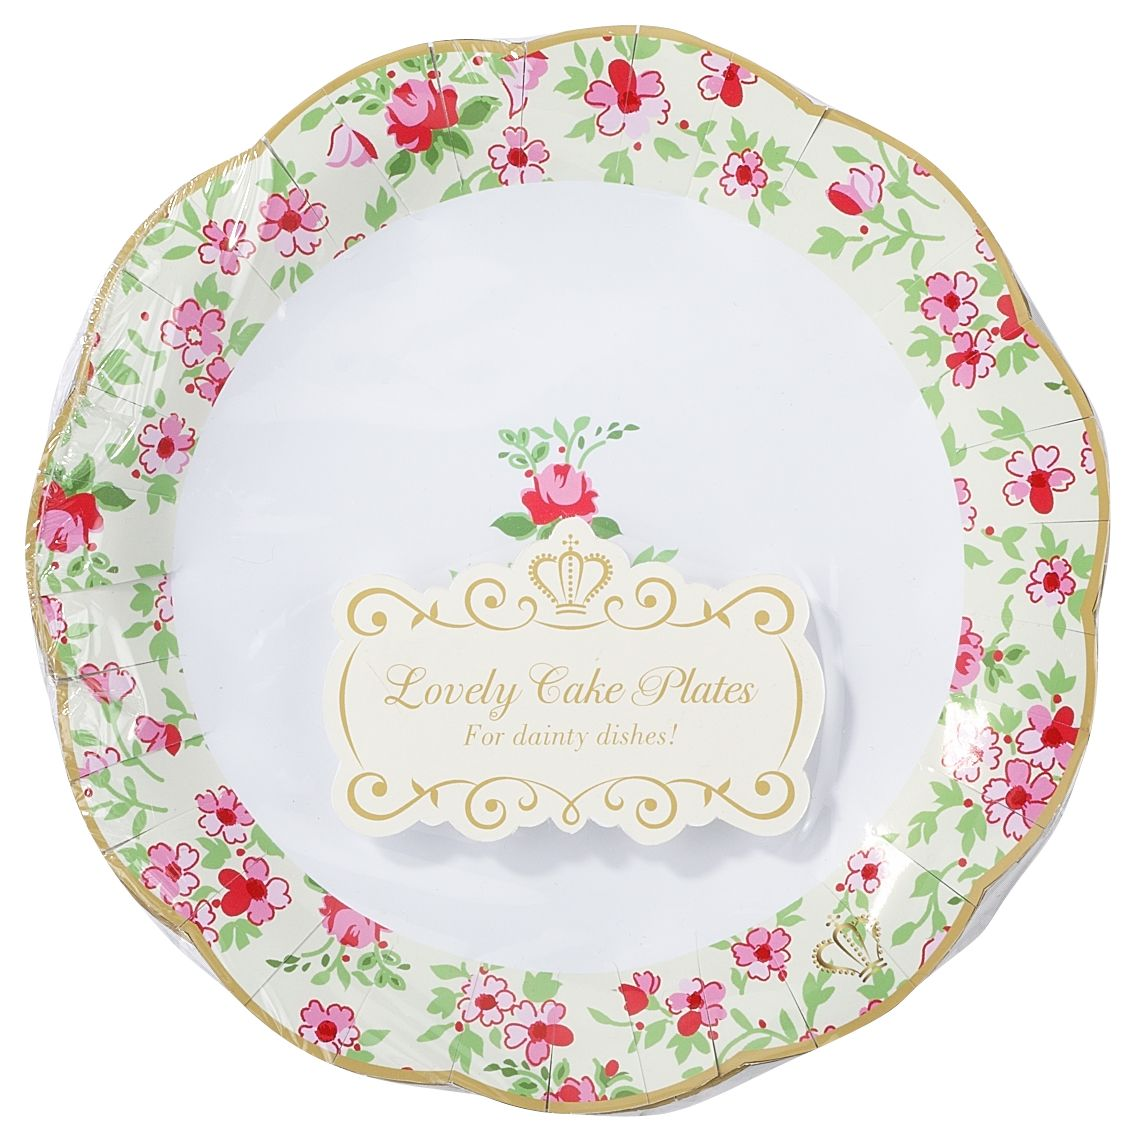 Truly Scrumptious Cake Plates, Pack of 12